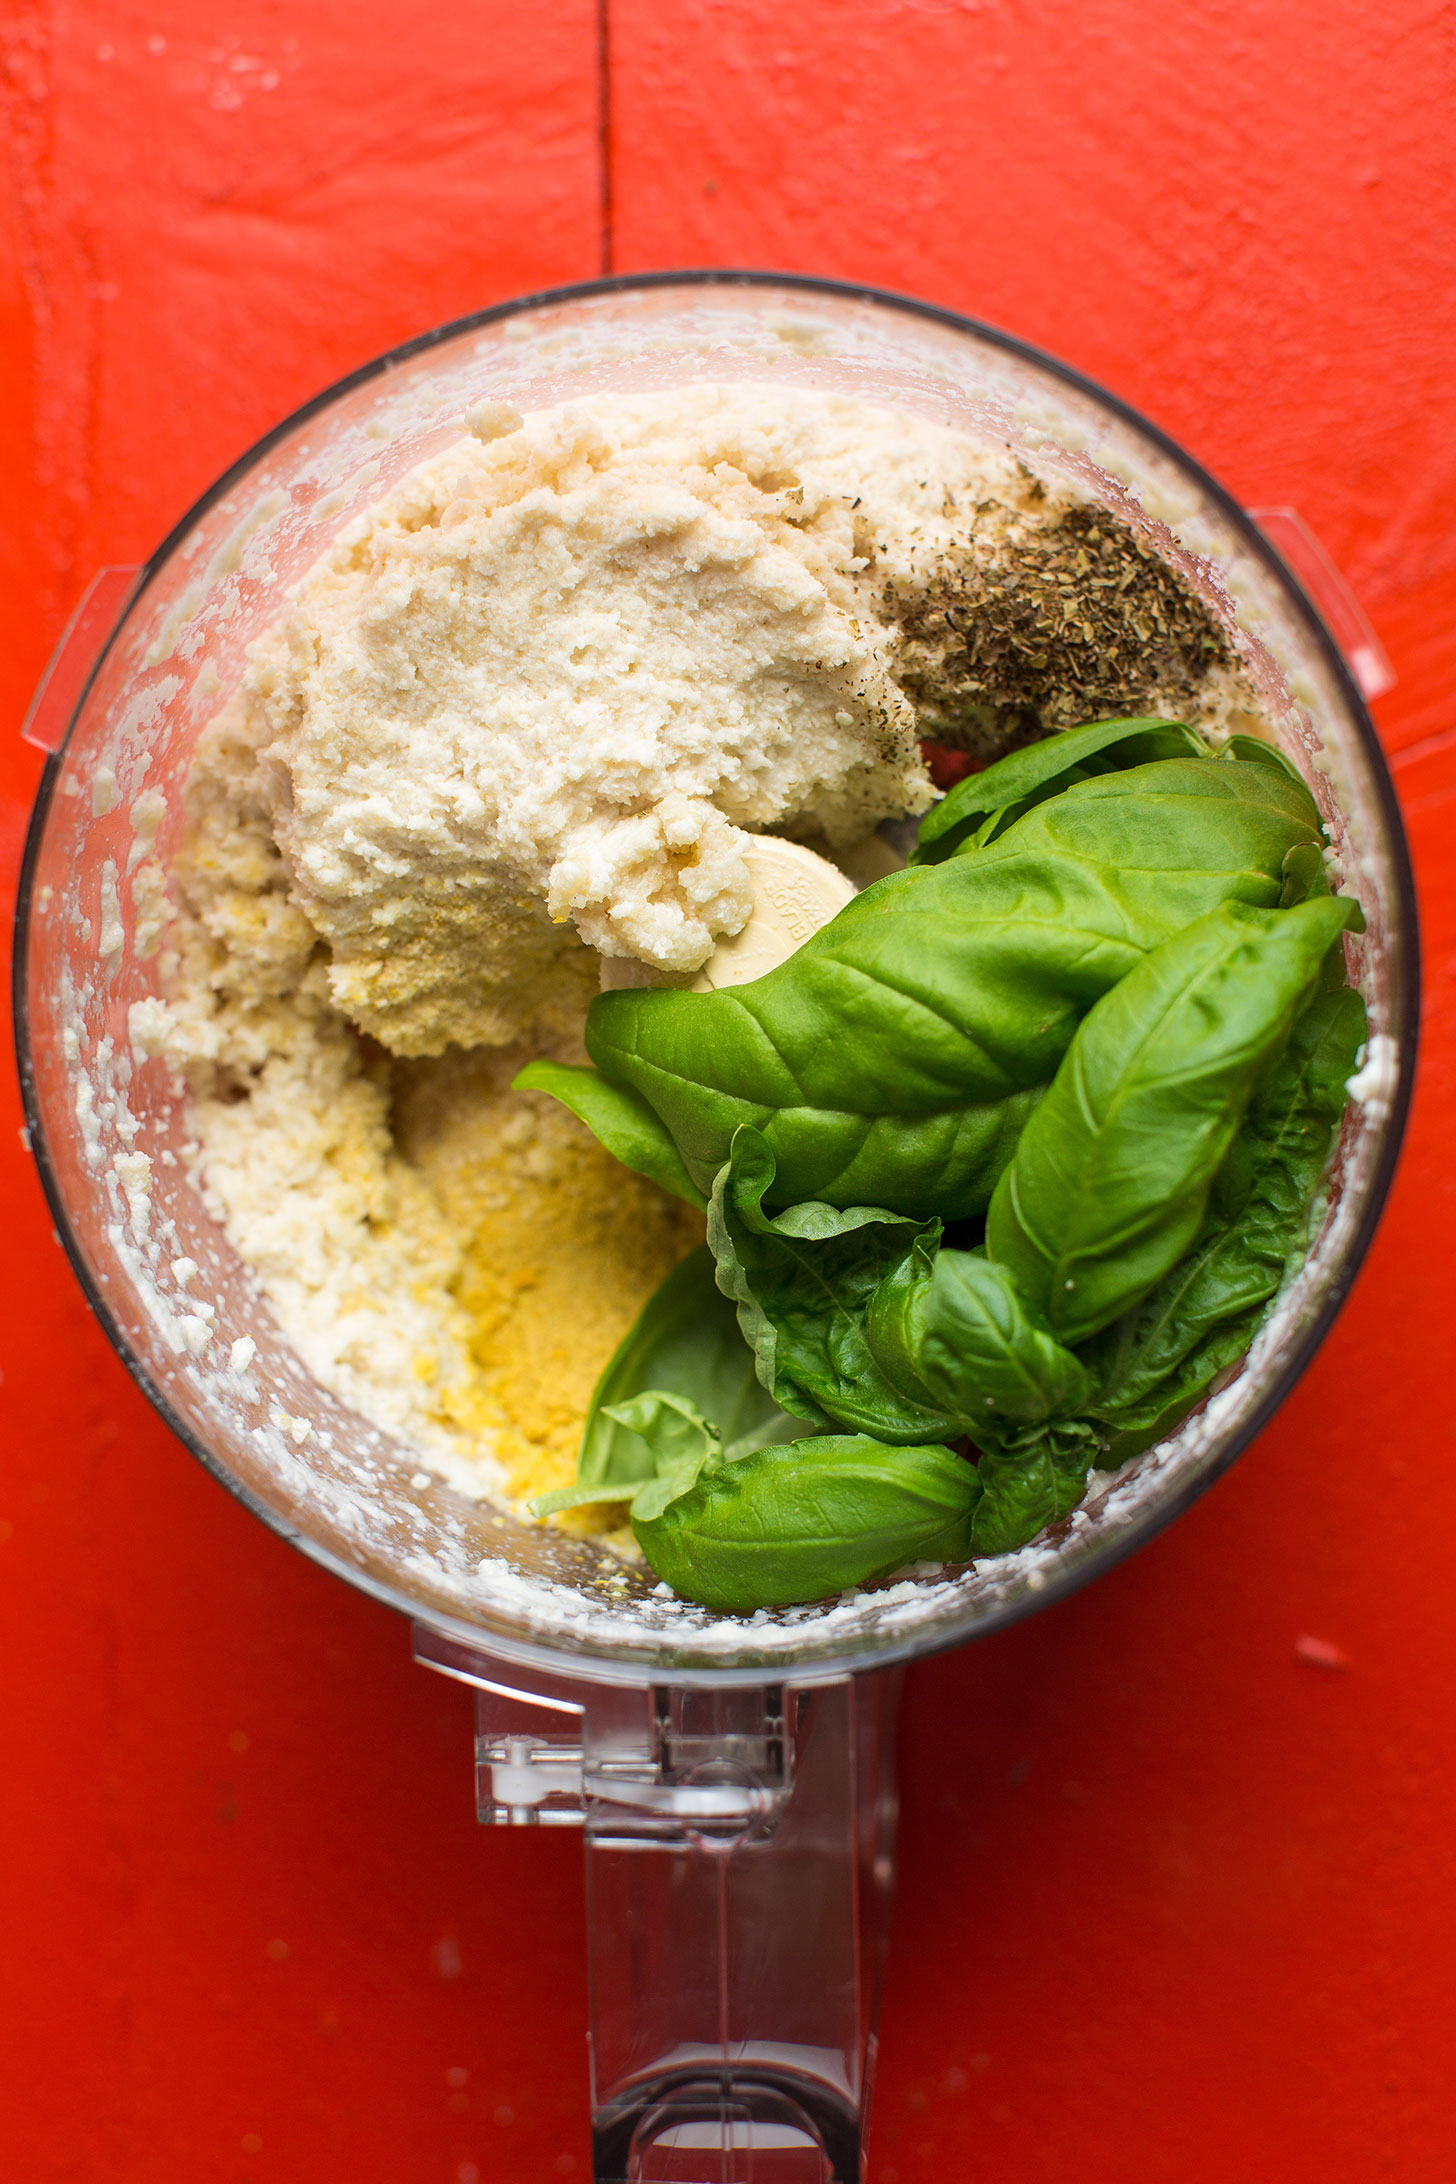 Vegan gluten free zucchini lasagna minimalist baker recipes food processor with ingredients for making our nut ricotta for vegan lasagna forumfinder